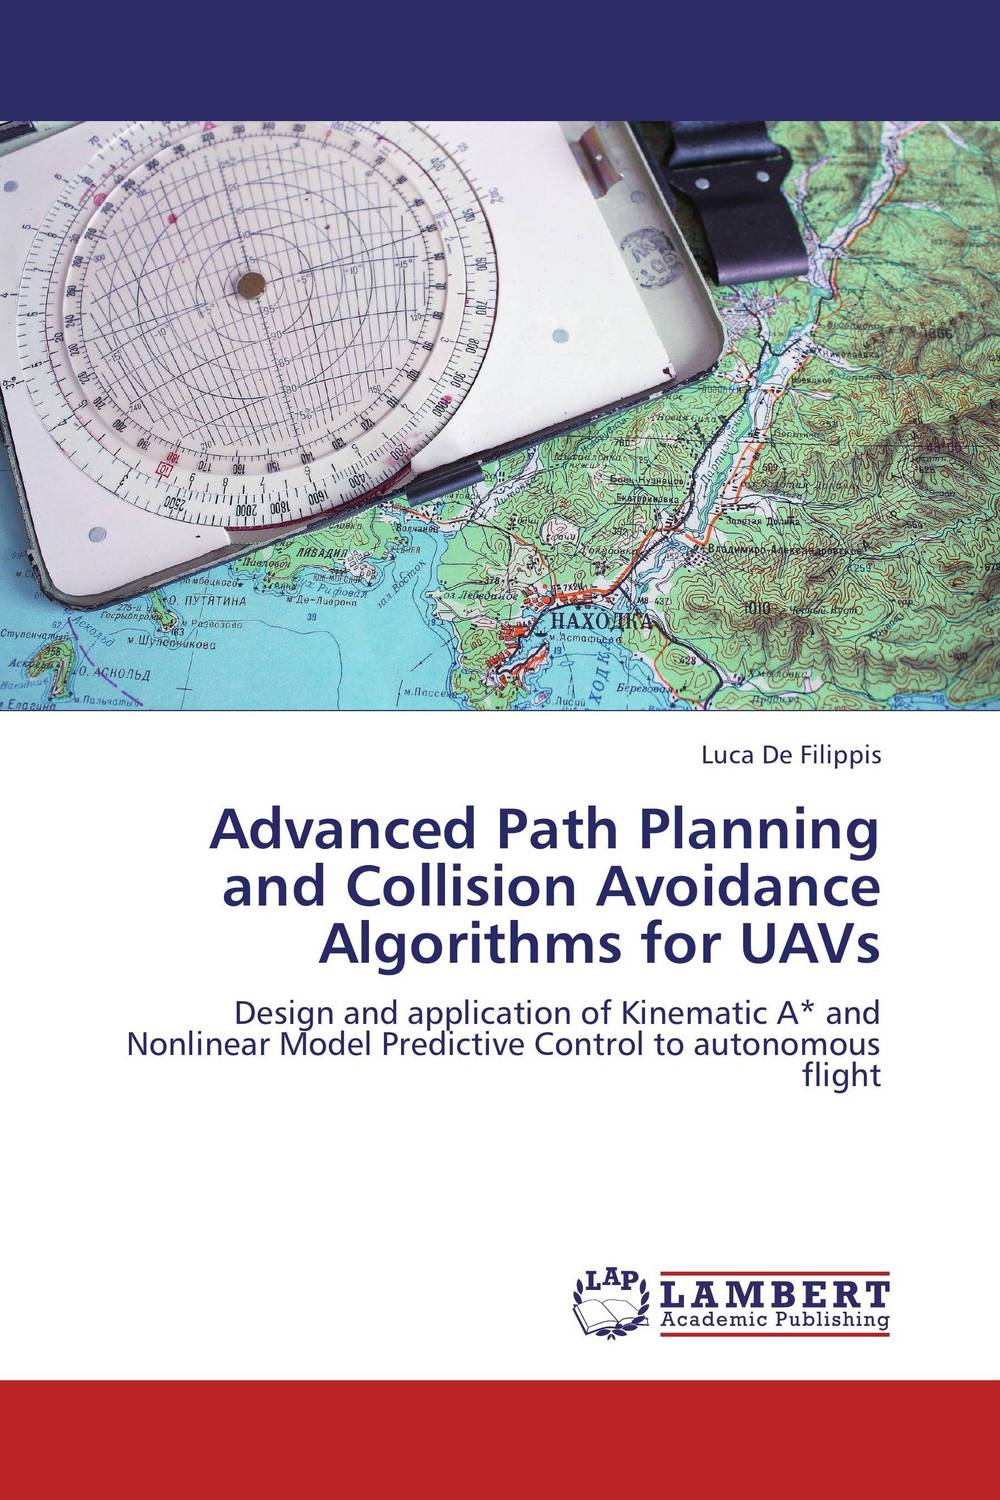 Advanced Path Planning and Collision Avoidance Algorithms for UAVs walking through the path of faith